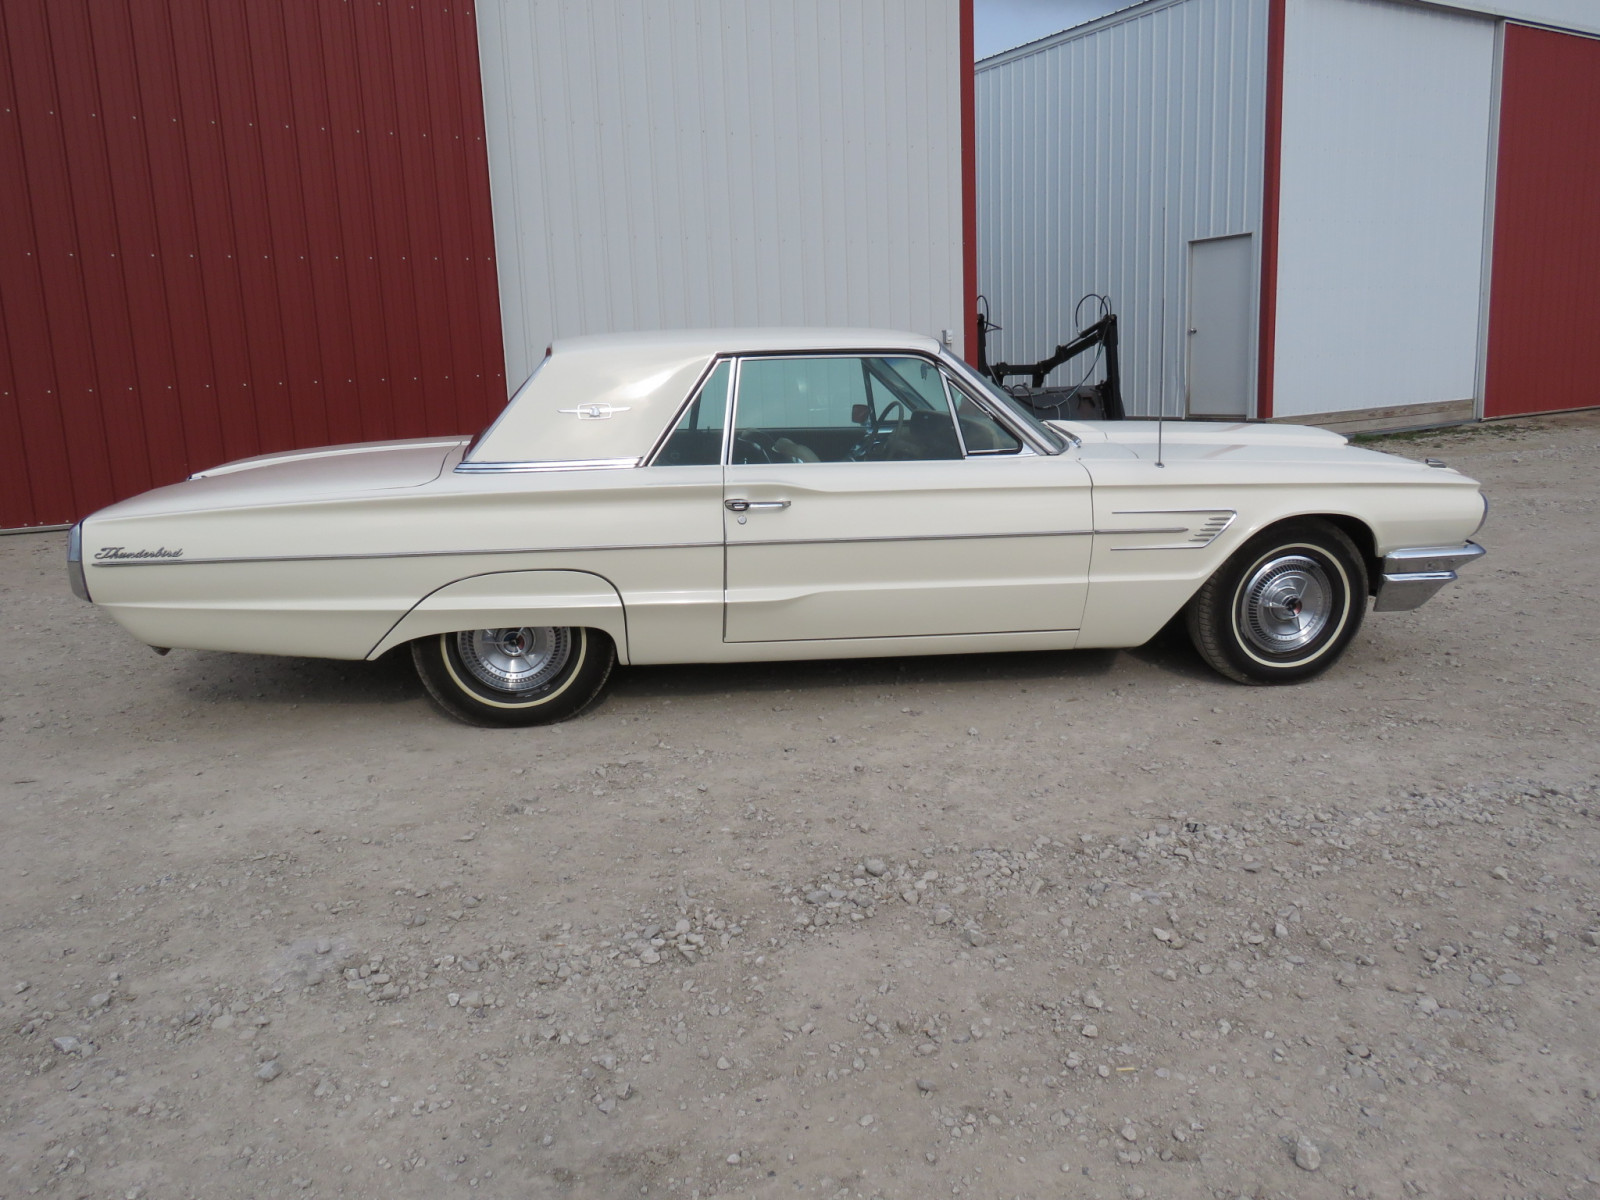 1965 Ford Thunderbird Coupe - Image 9